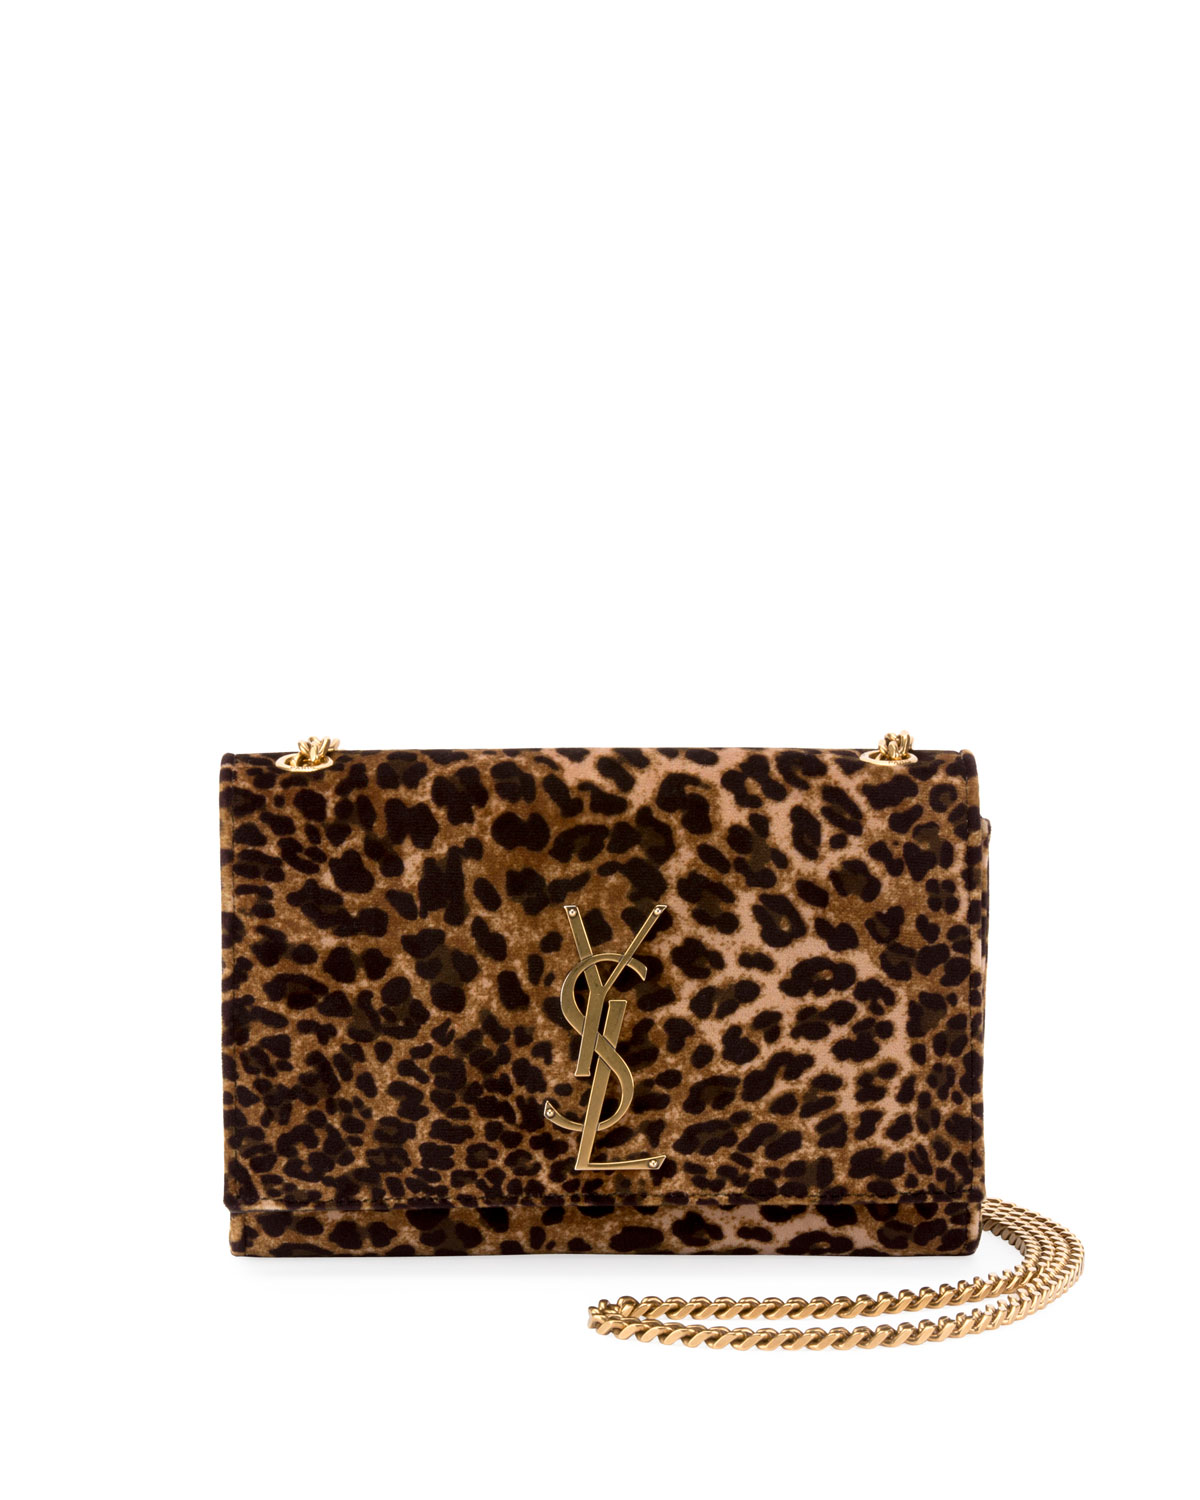 427136b088ef Saint Laurent Kate Monogram YSL Small Leopard-Print Velvet Crossbody ...